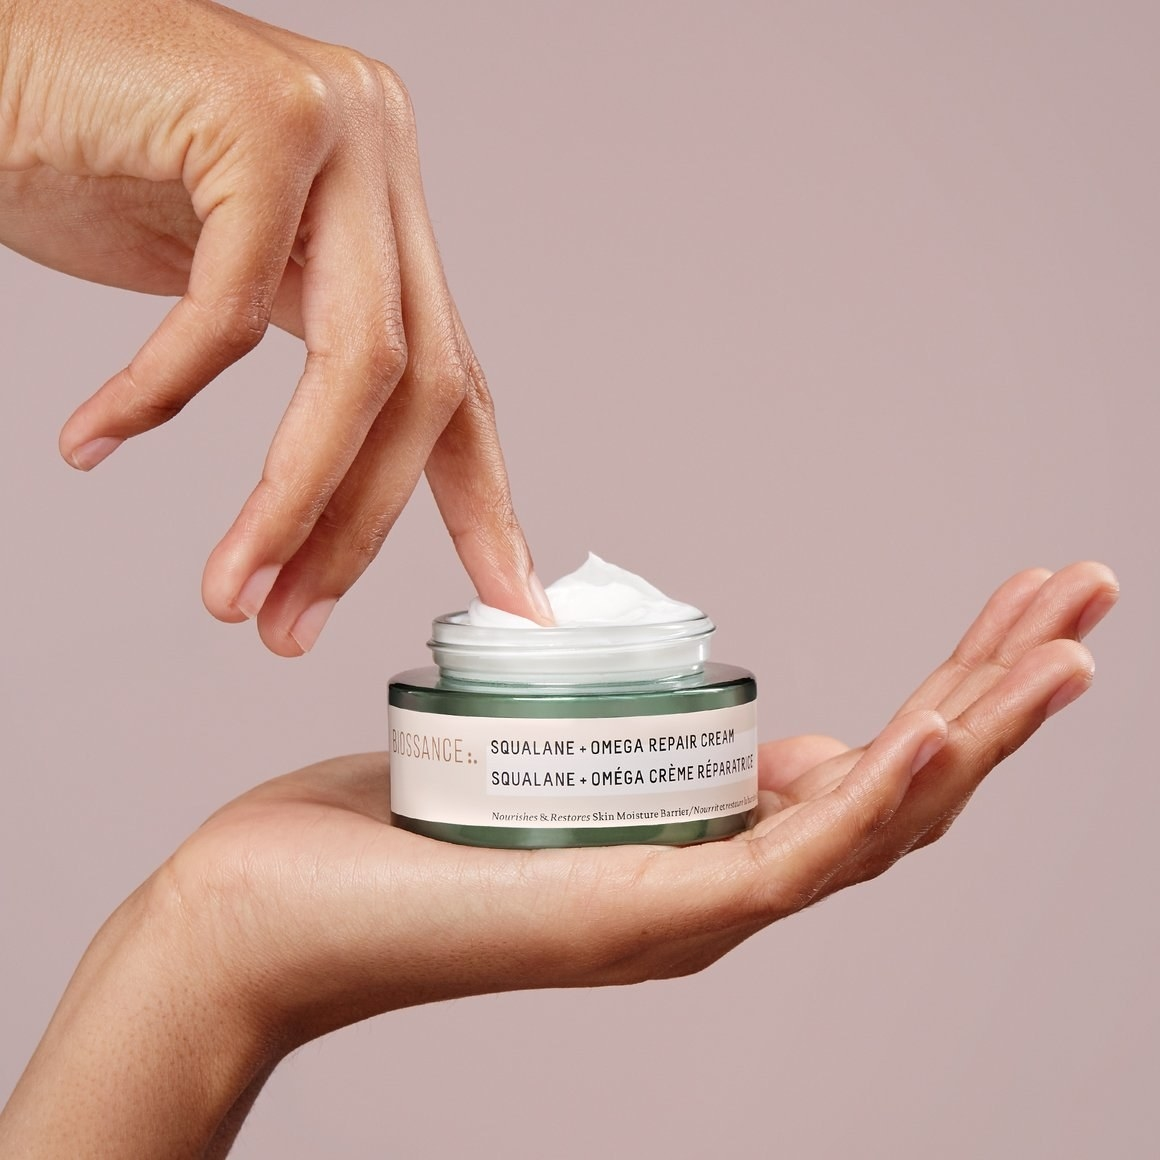 Model's hand scooping out a bit of the whipped-textured moisturizer from the jar